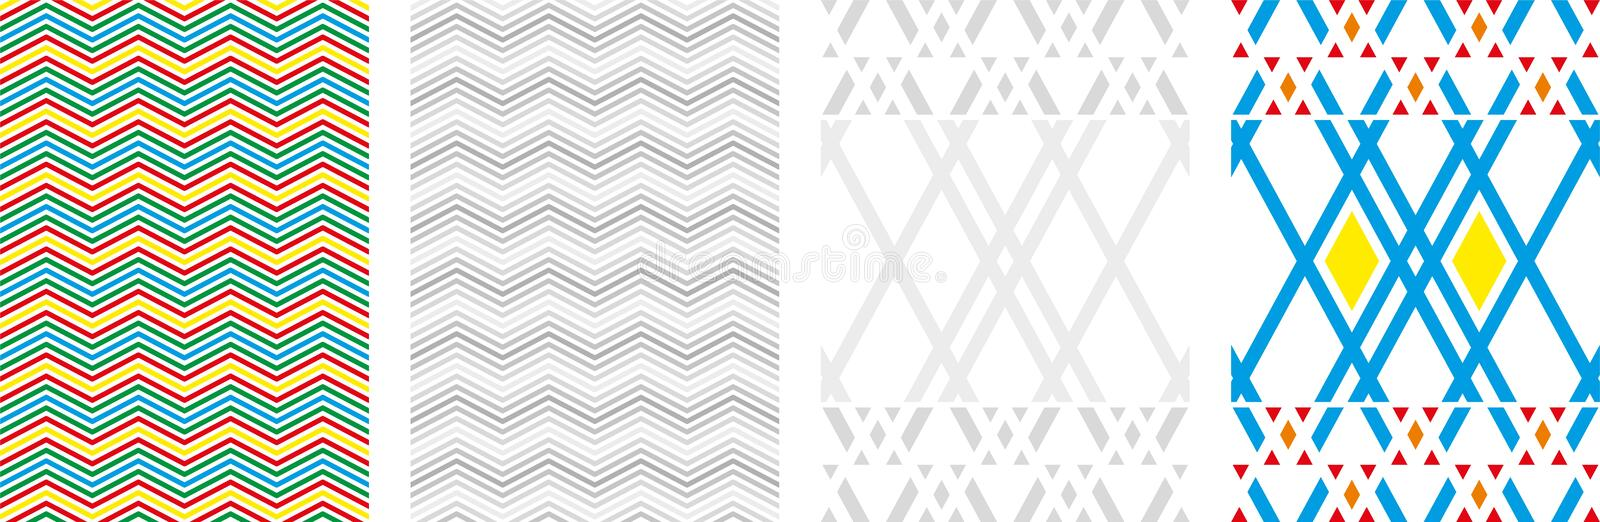 Vector abstract boxes background. Modern technology illustration with square mesh. Digital geometric abstraction with lines and po stock illustration